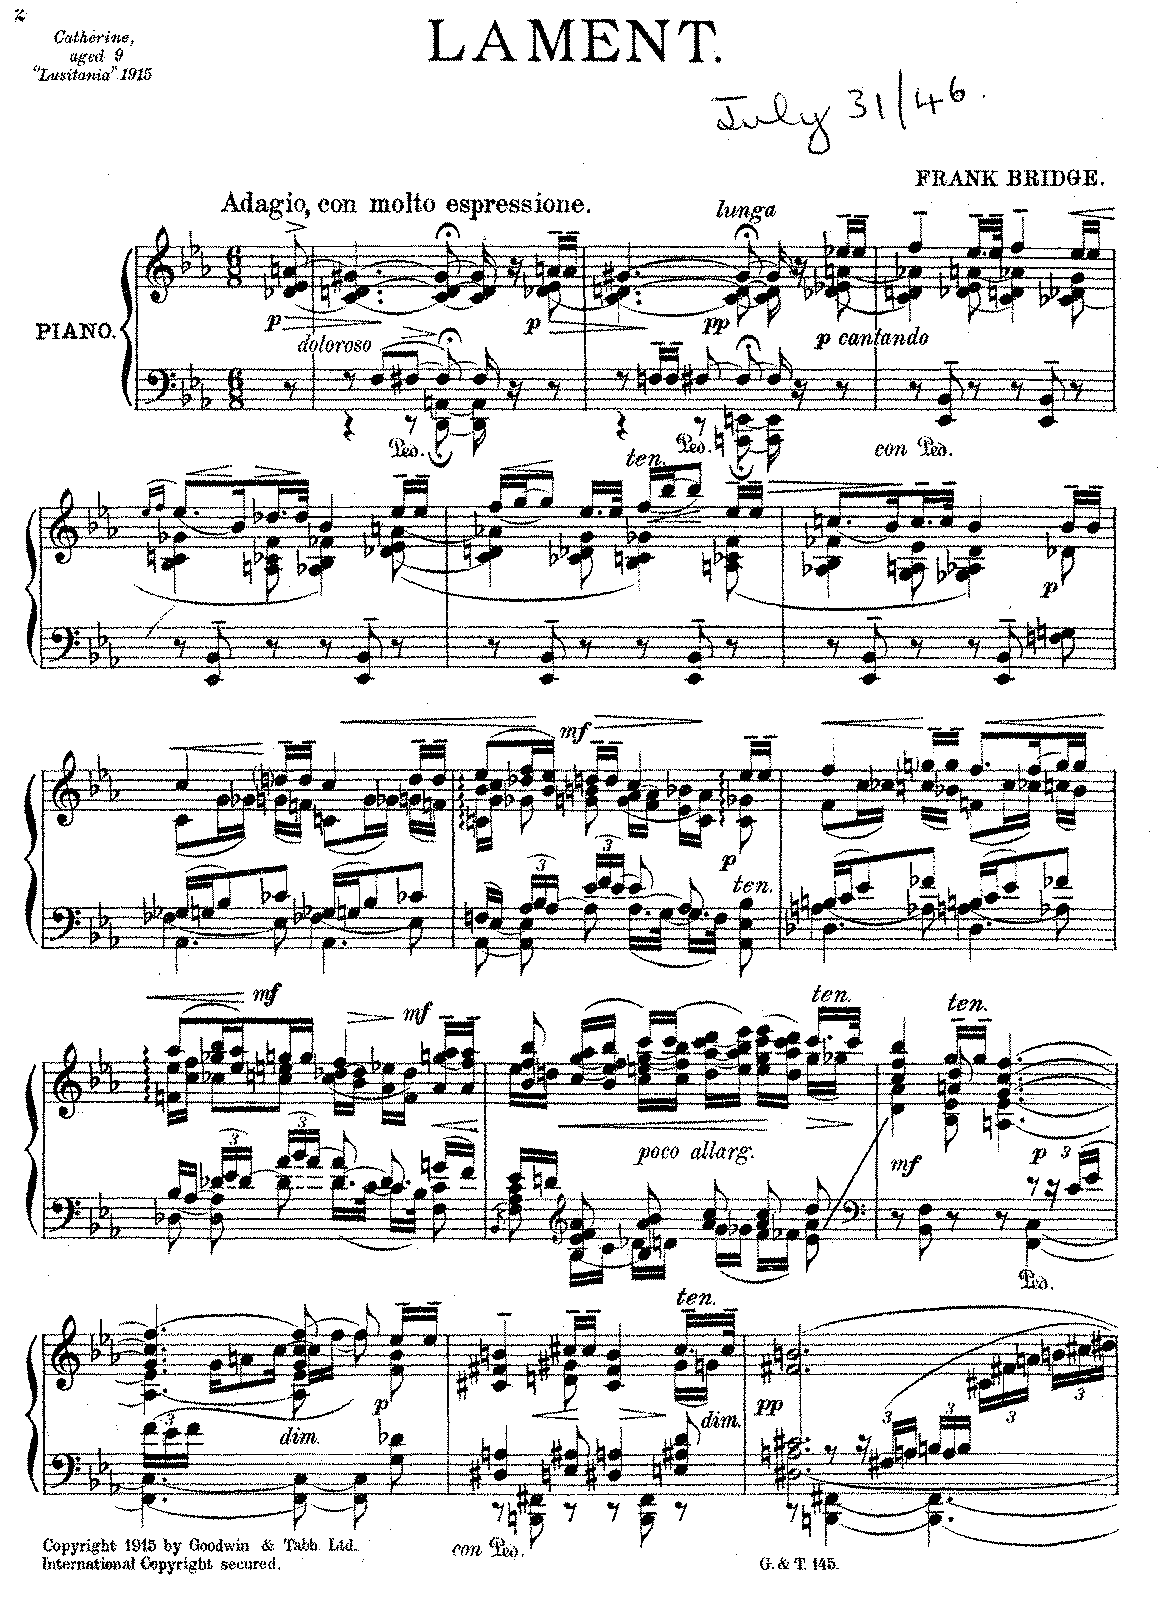 Bridge - Lament (piano).pdf